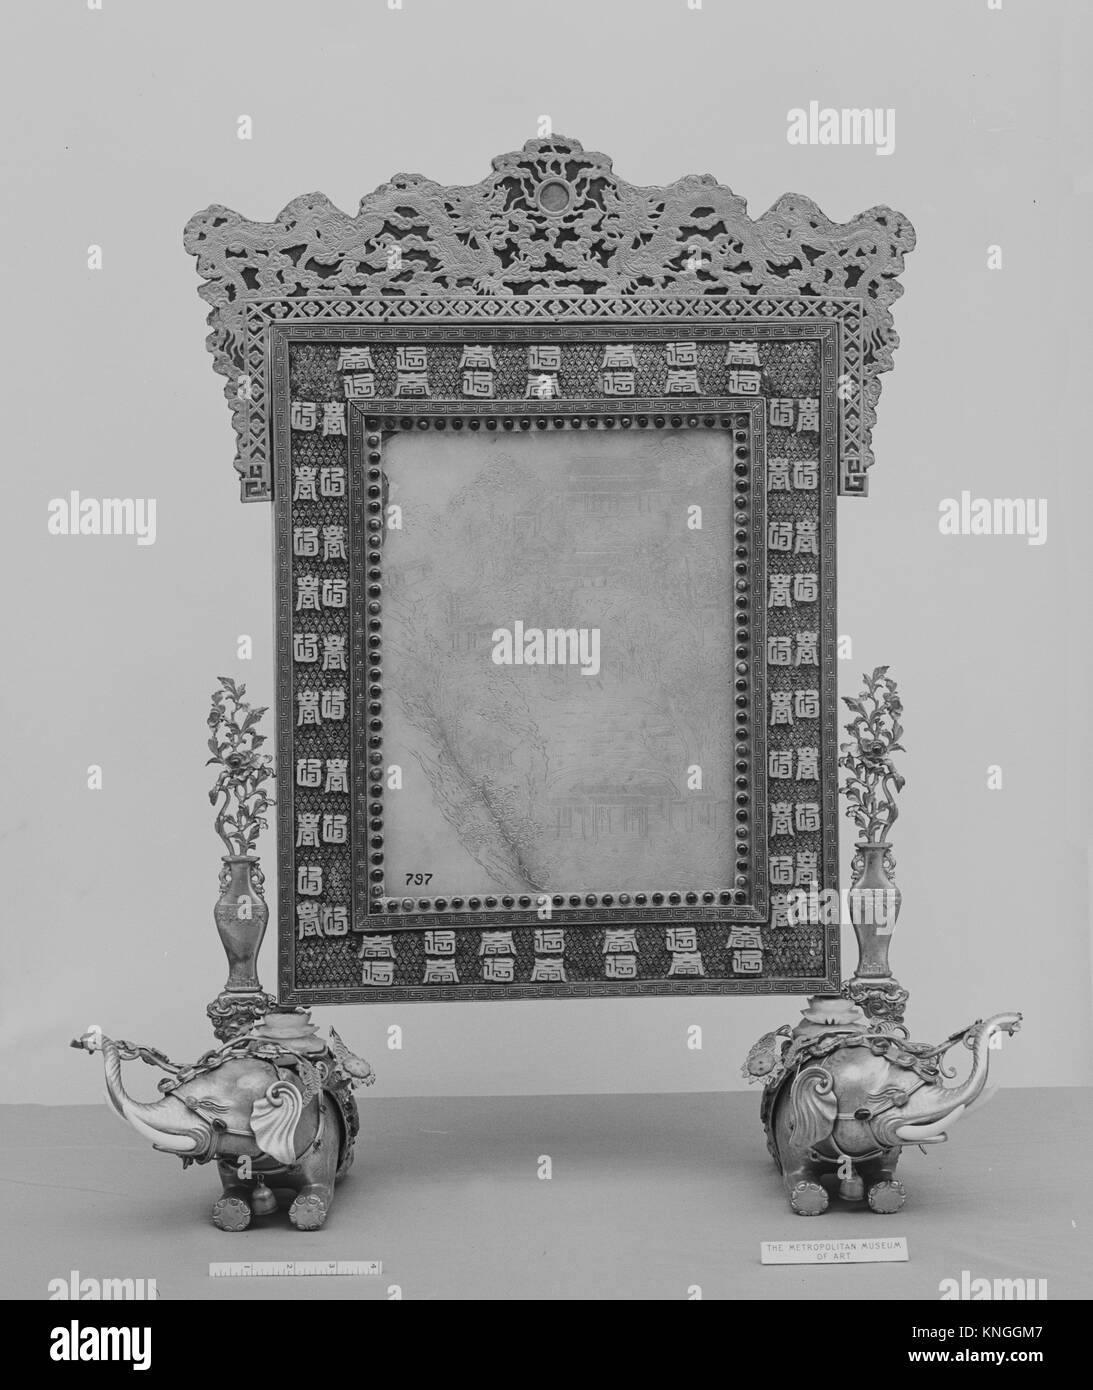 Table screen. Period: Qing dynasty (1644-1911), Jiaqing period (1796-1820); Culture: China; Medium: Jadeite, pale - Stock Image